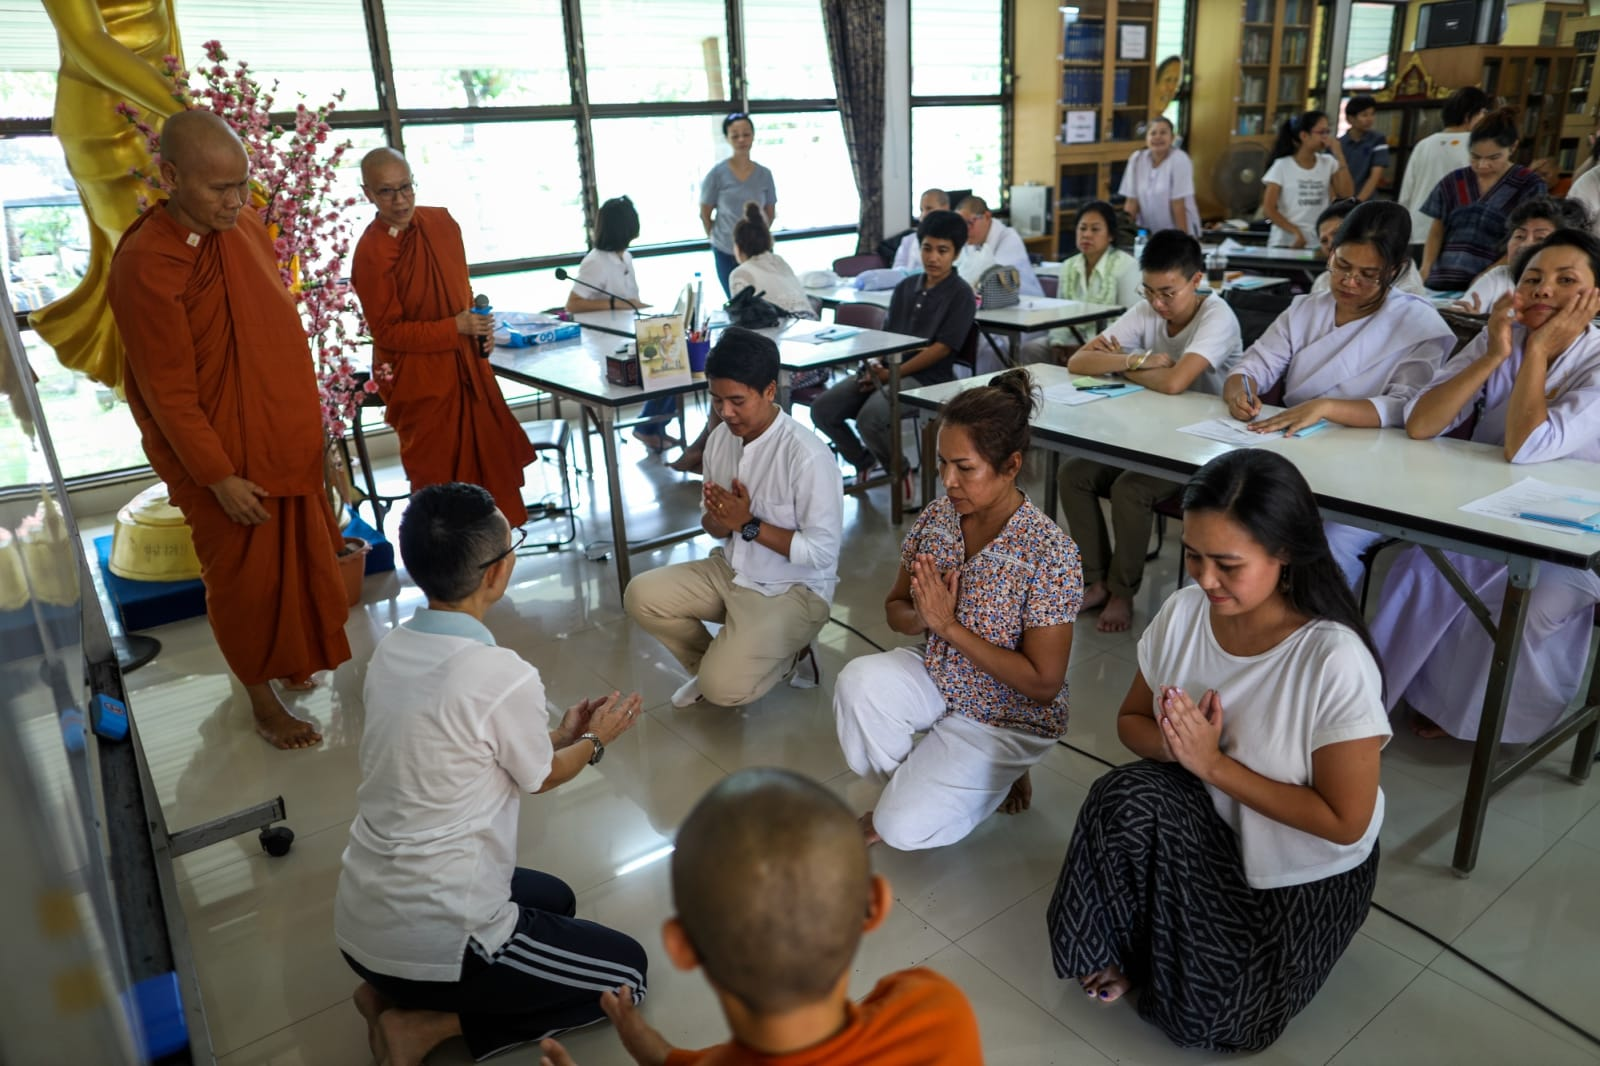 Thai women devotees practice during a first orientation to become Buddhist novice monks at the Songdhammakalyani monastery, Nakhon Pathom province, Thailand, November 17, 2018. REUTERS/Athit Perawongmetha